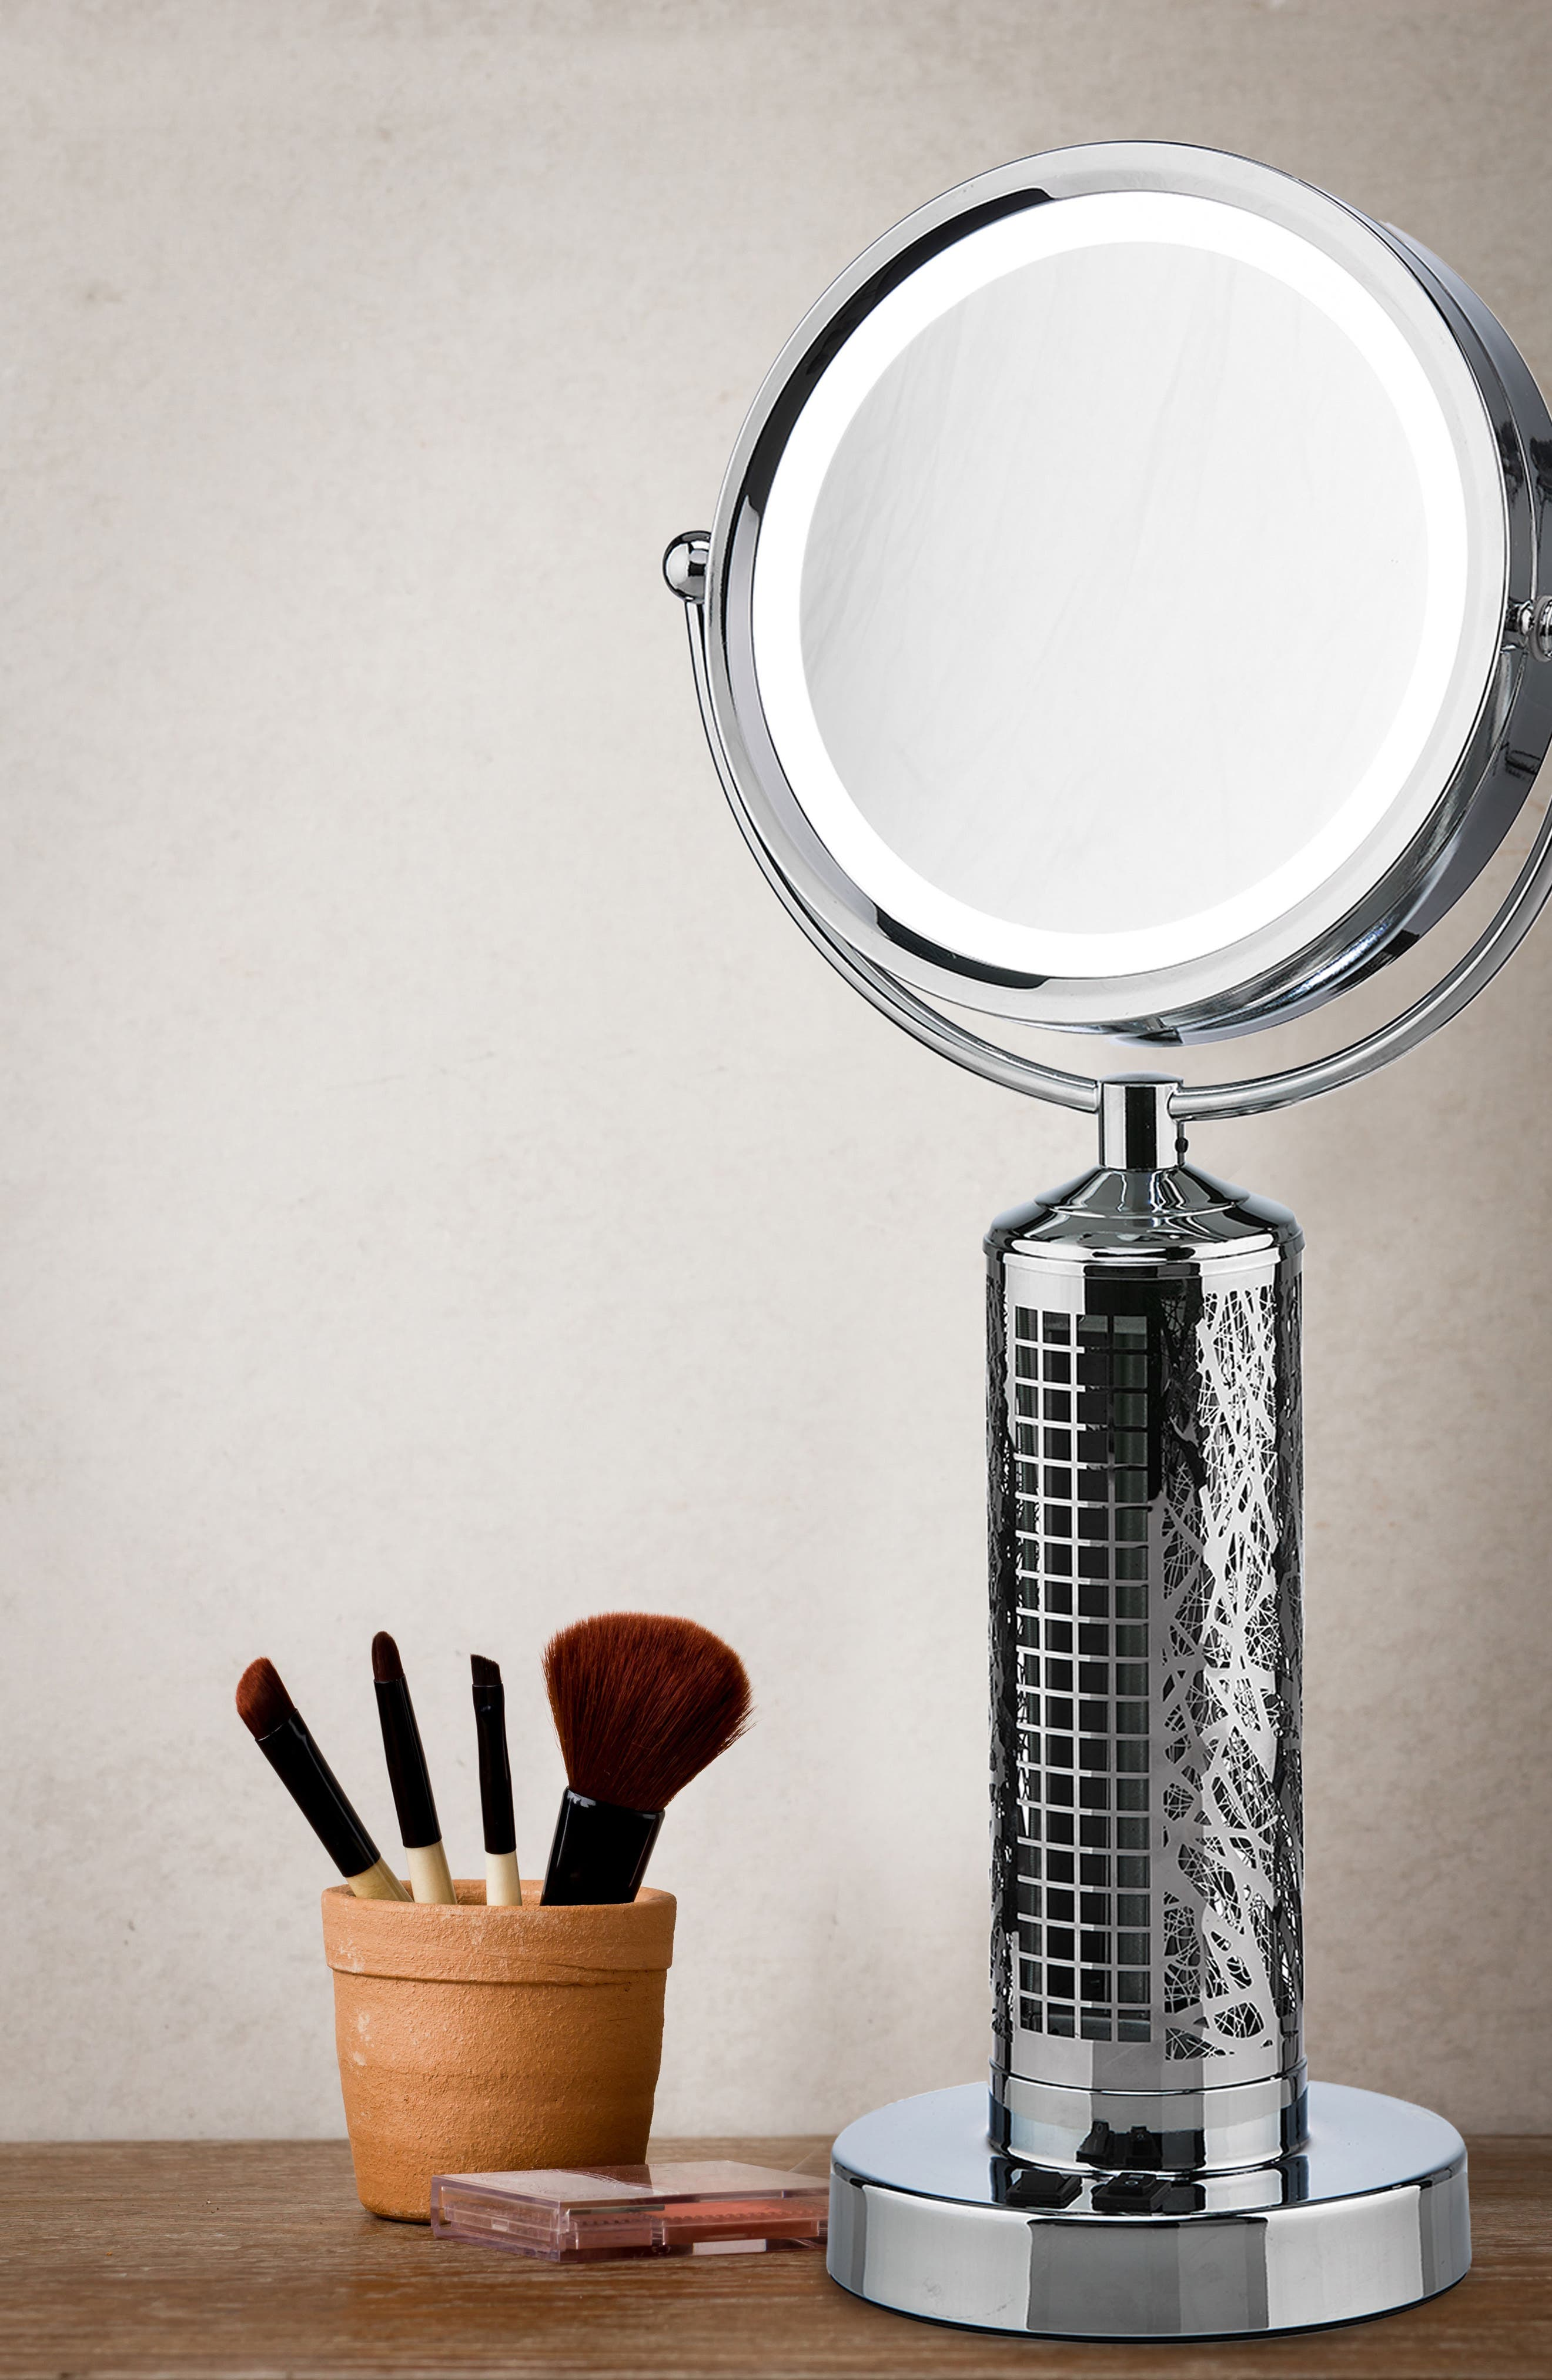 Fanity Makeup Mirror with Electric Fan,                             Alternate thumbnail 2, color,